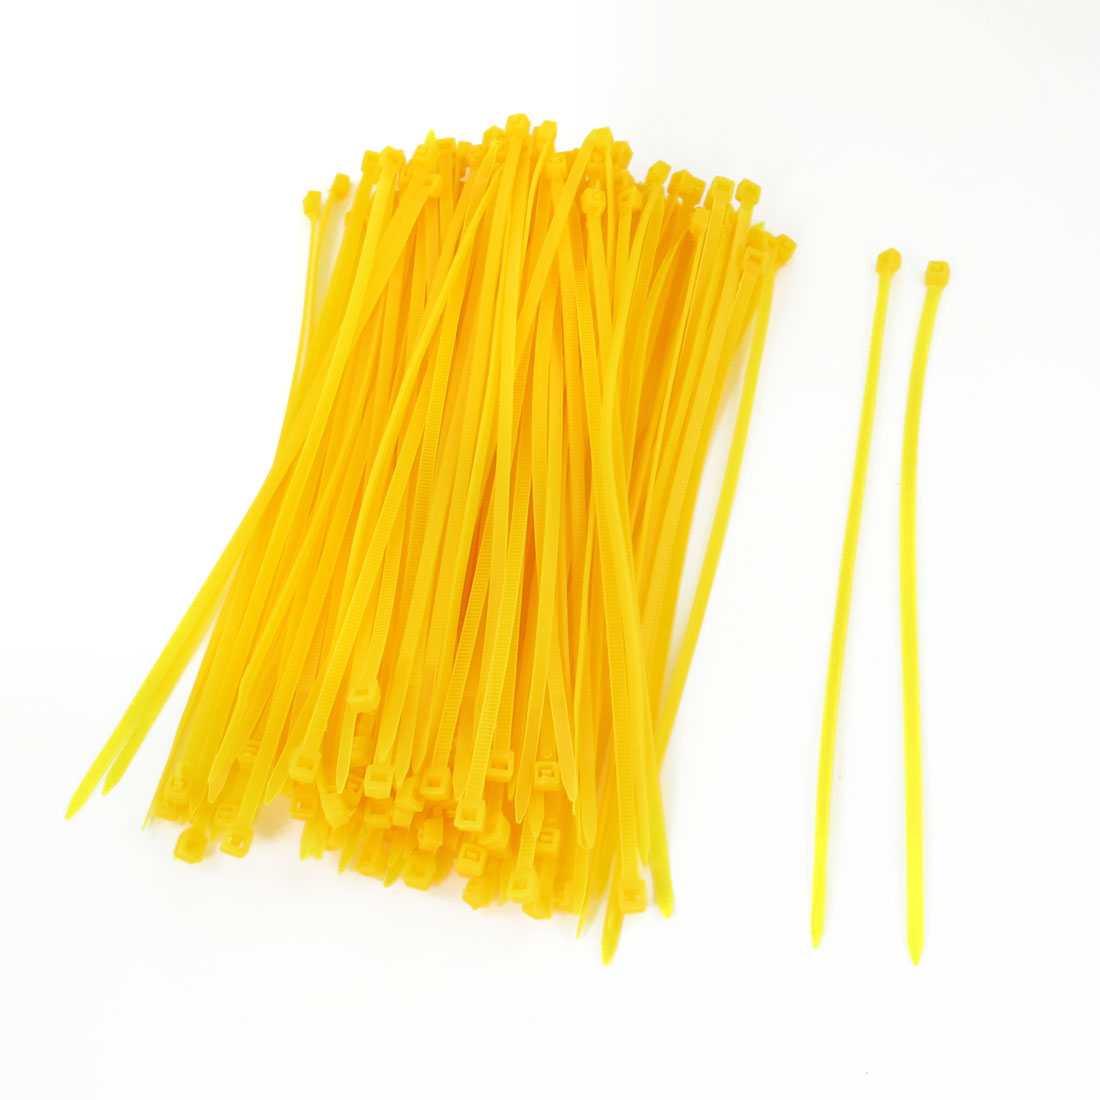 Dark Yellow Plastic 190mm Length Wire Cable Ties 150 Pcs